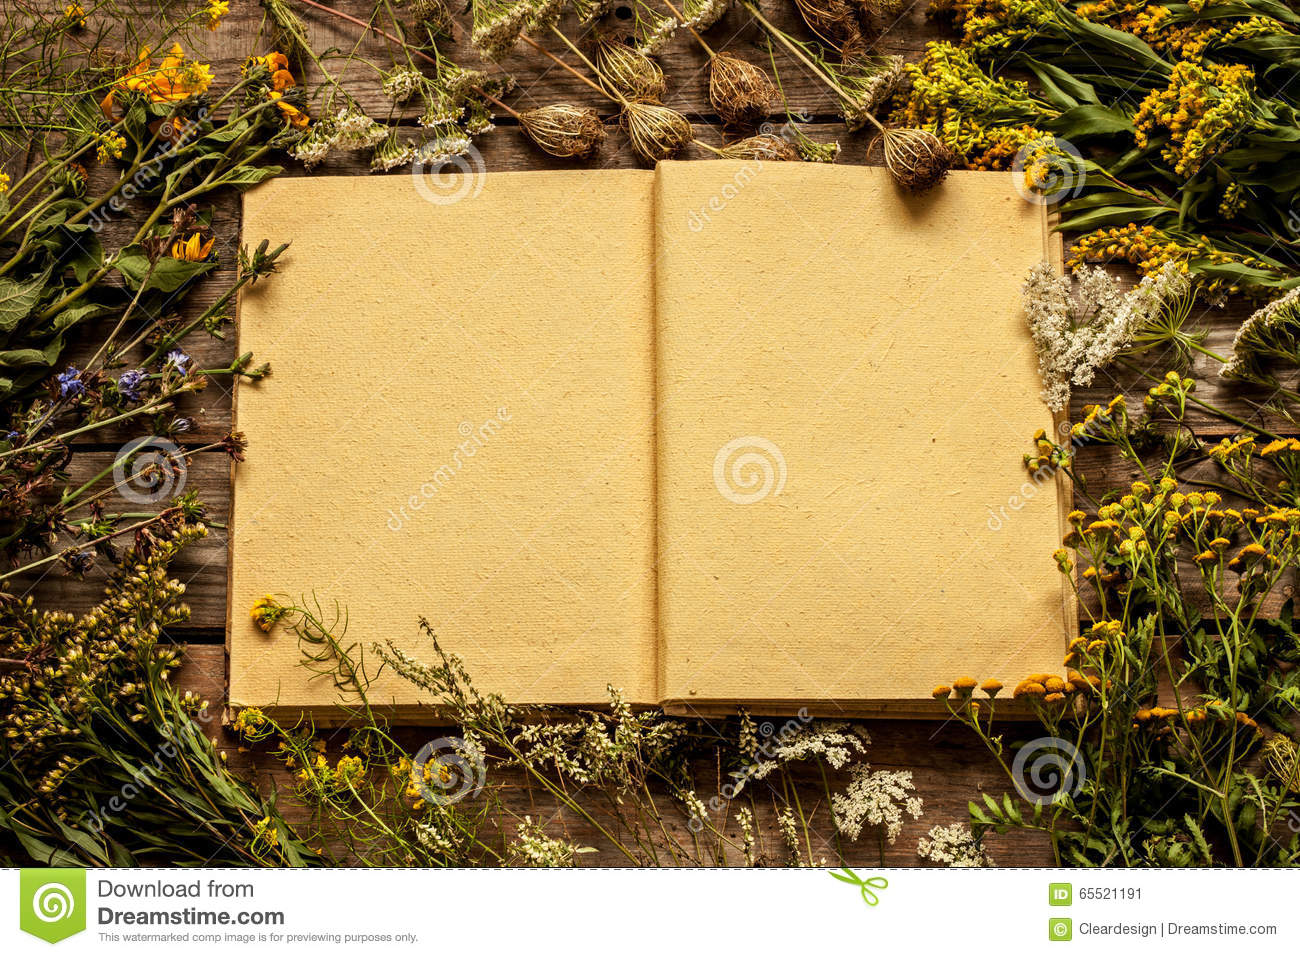 Blank opened book with late summer natural meadow flowers and plants around